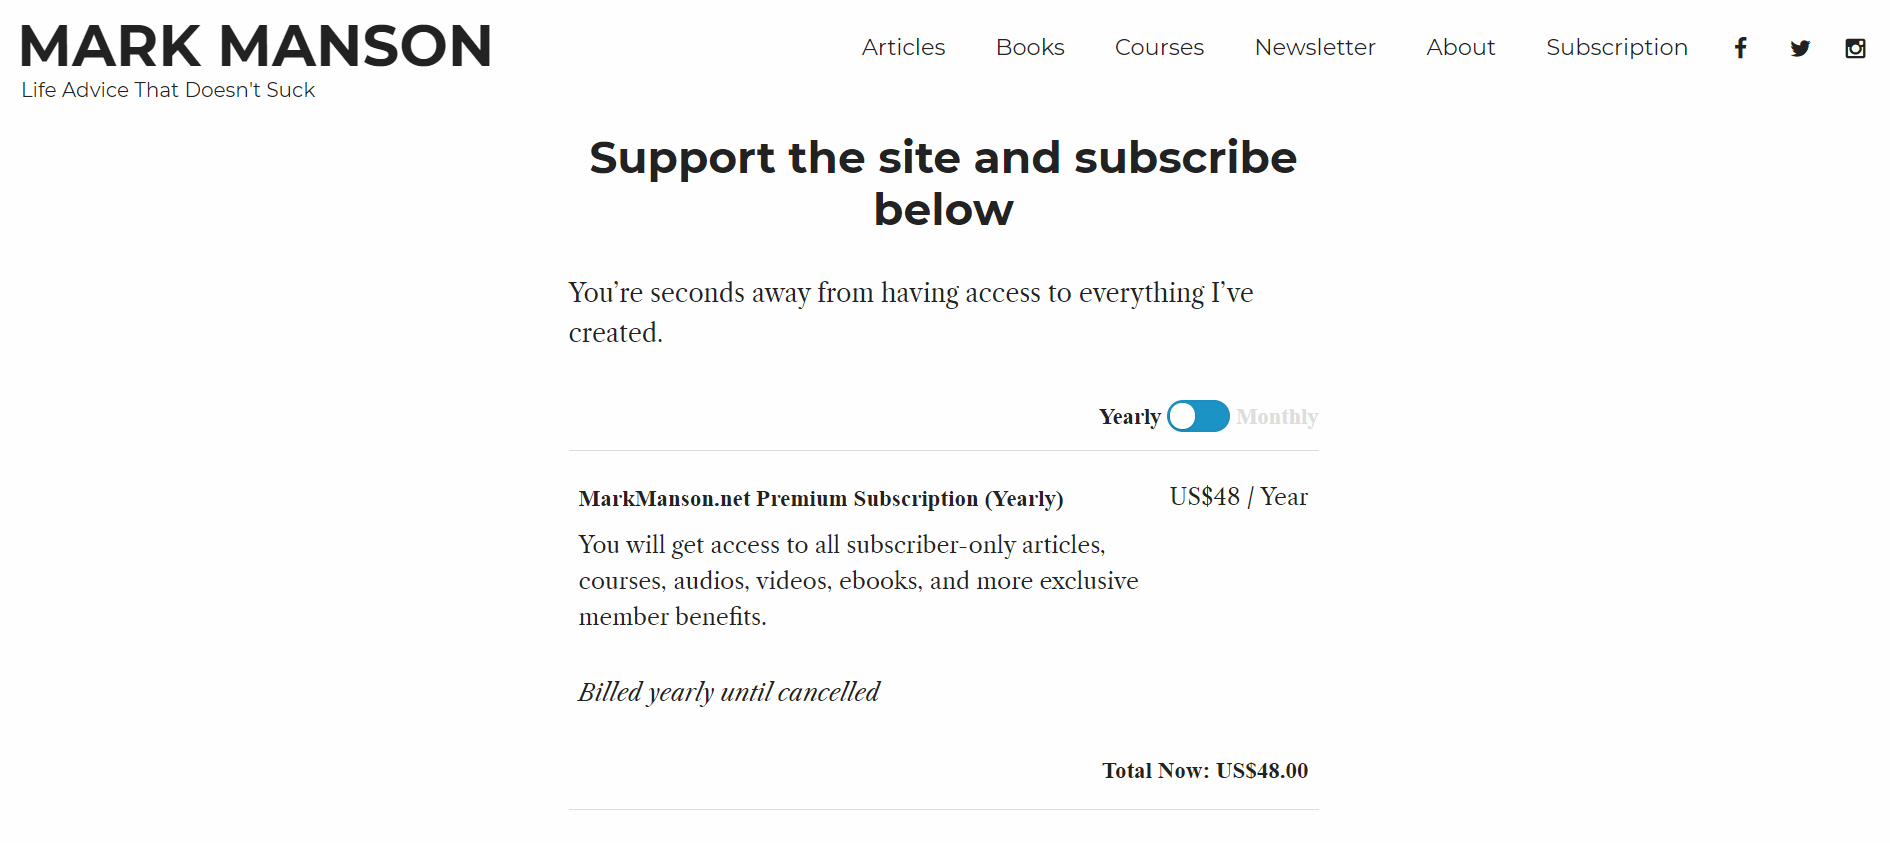 Mark Manson Subscription Page